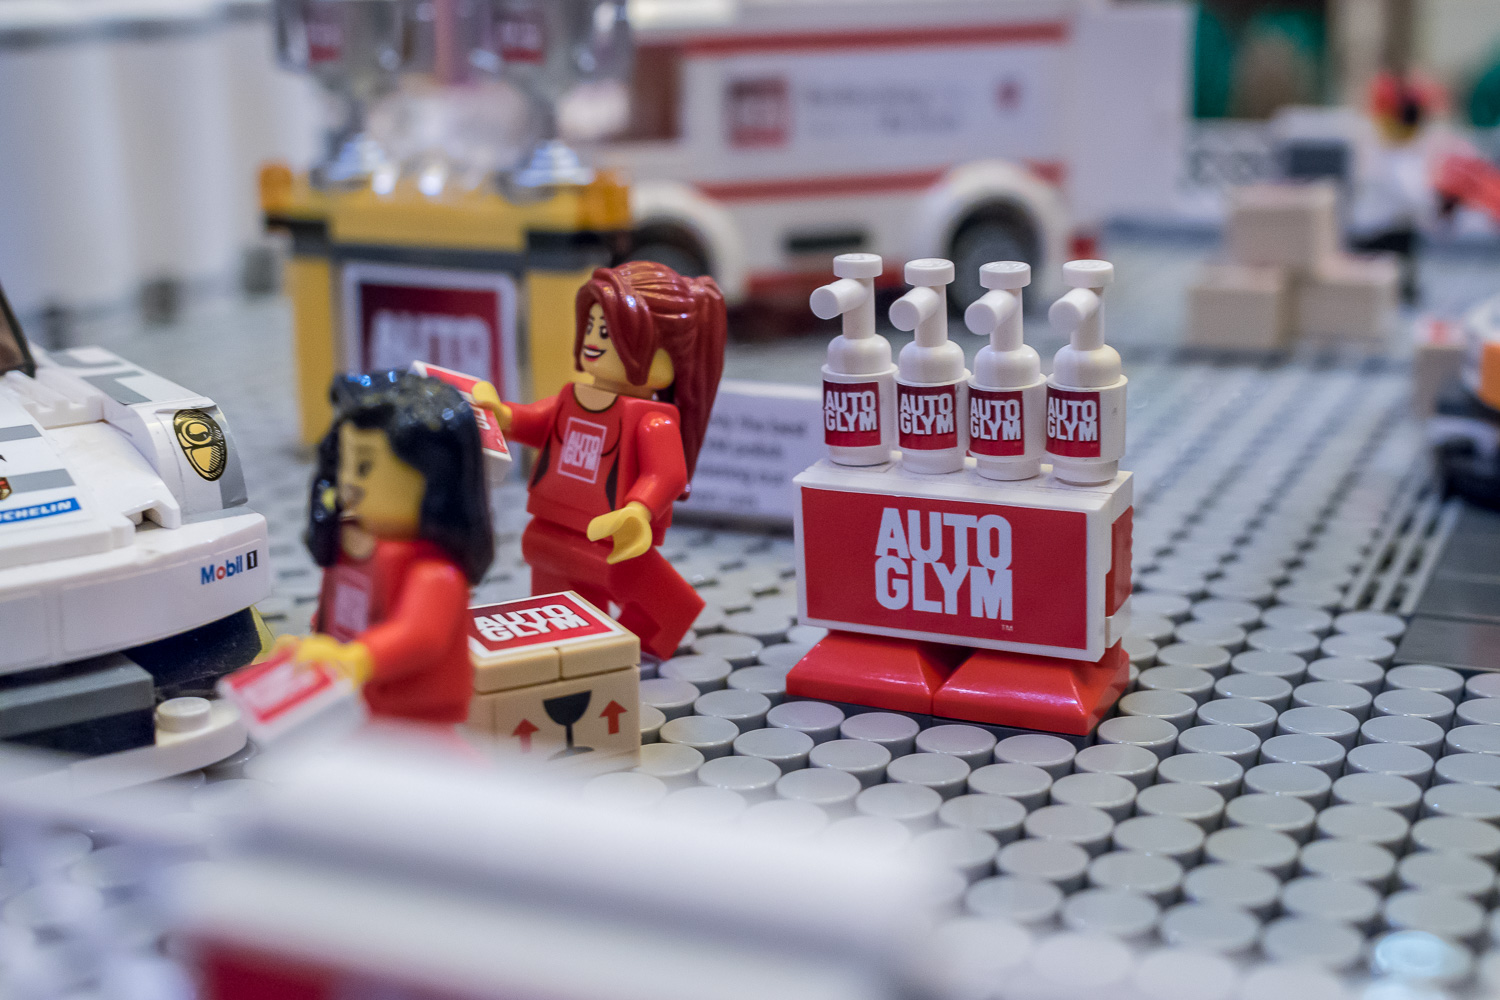 Autoglym LEGO Set Released